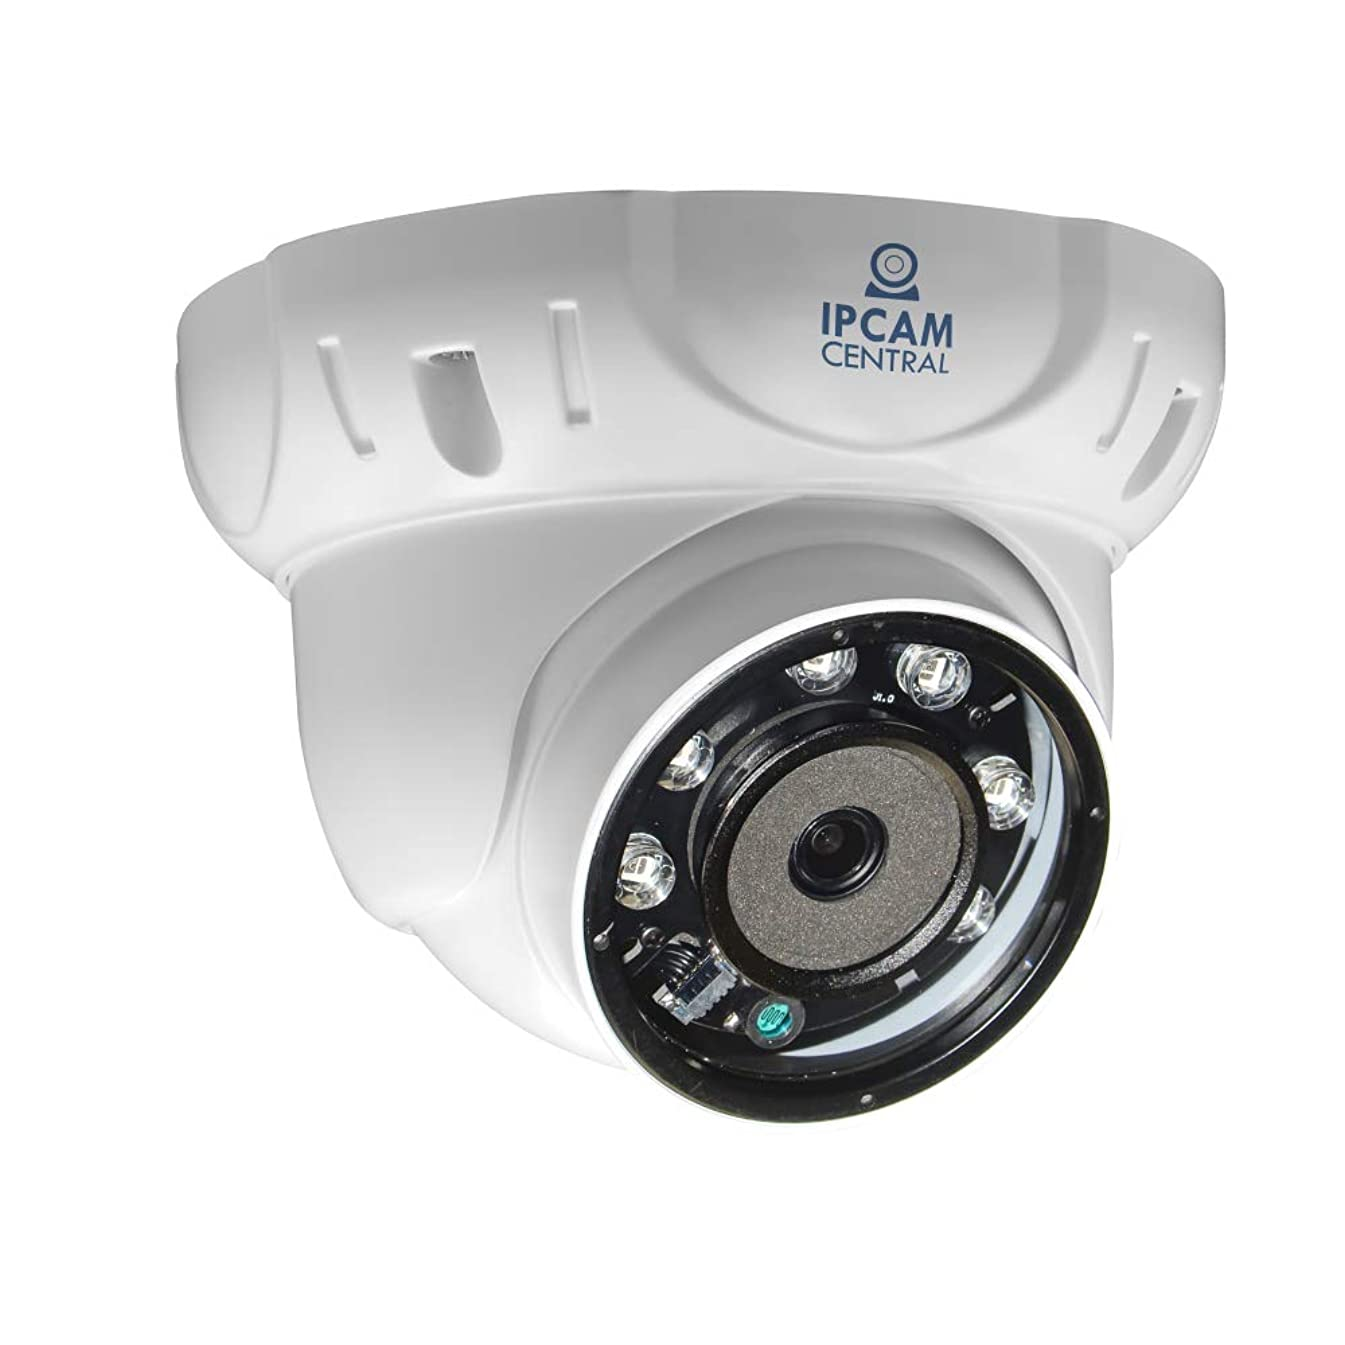 IPCC-4004E - 4X Optical Zoom (2.8-12mm), AutoFocus, UHD 5.0 Mega Pixel, IP65 Metal, POE MiniDome Camera with 60ft Ir Nightvision,ONVIF, Compatible with Synology, Blueiris- Color White